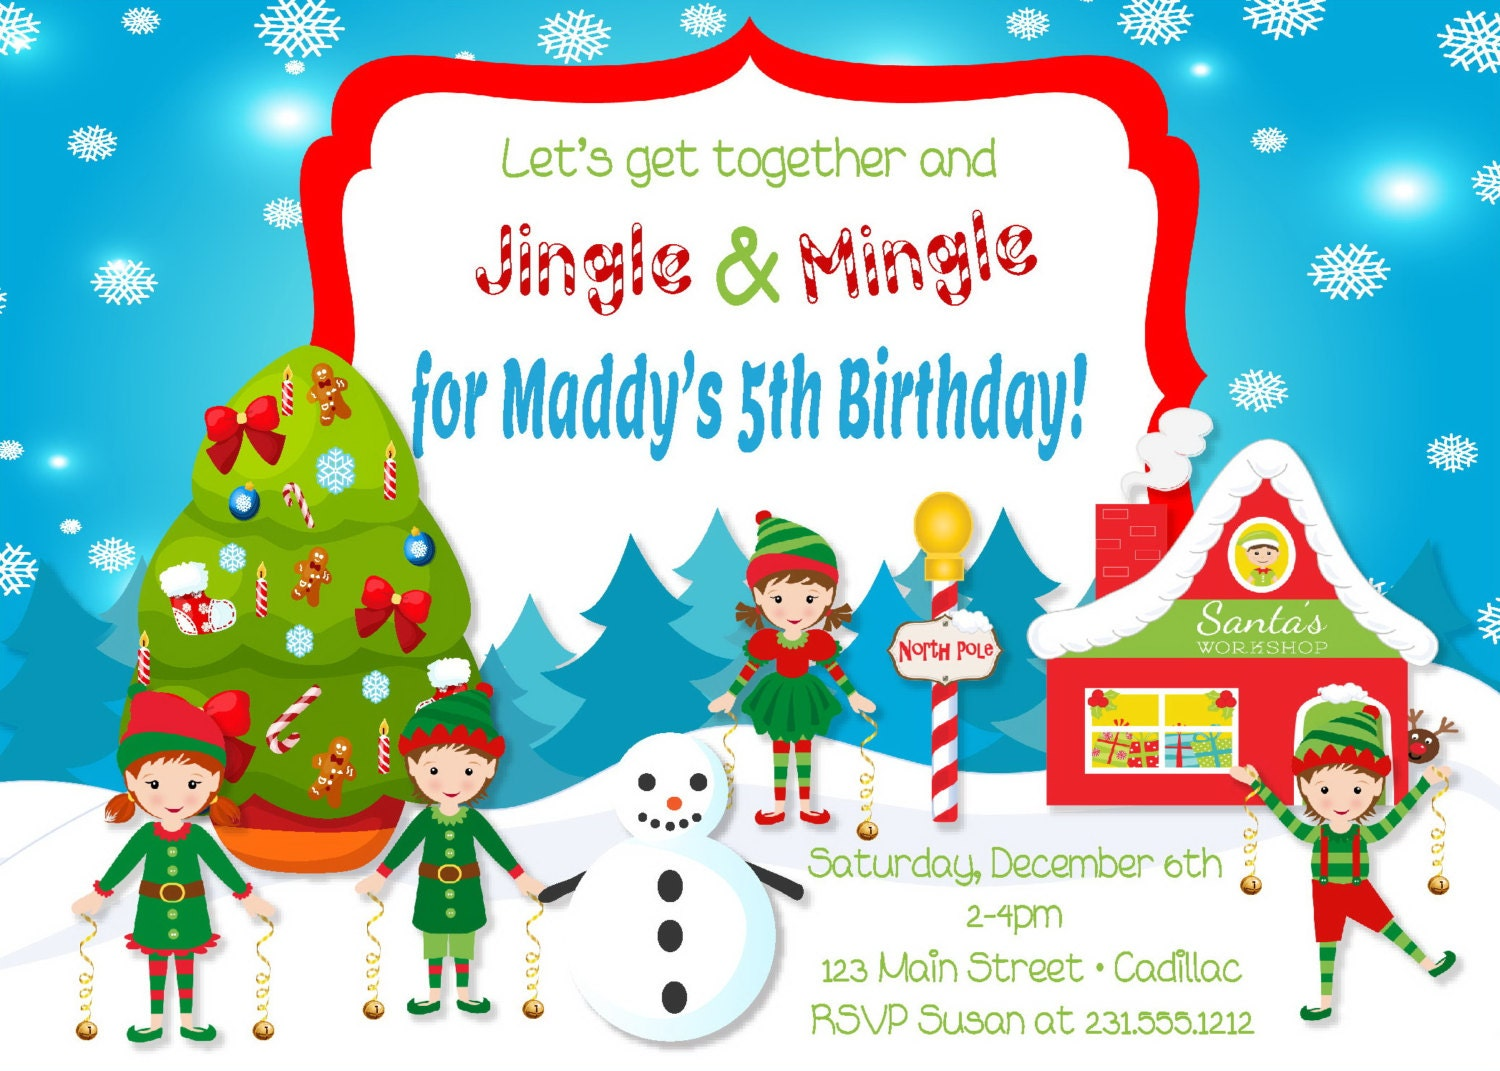 Kids Christmas Party Invitations Jingle & Mingle Kids